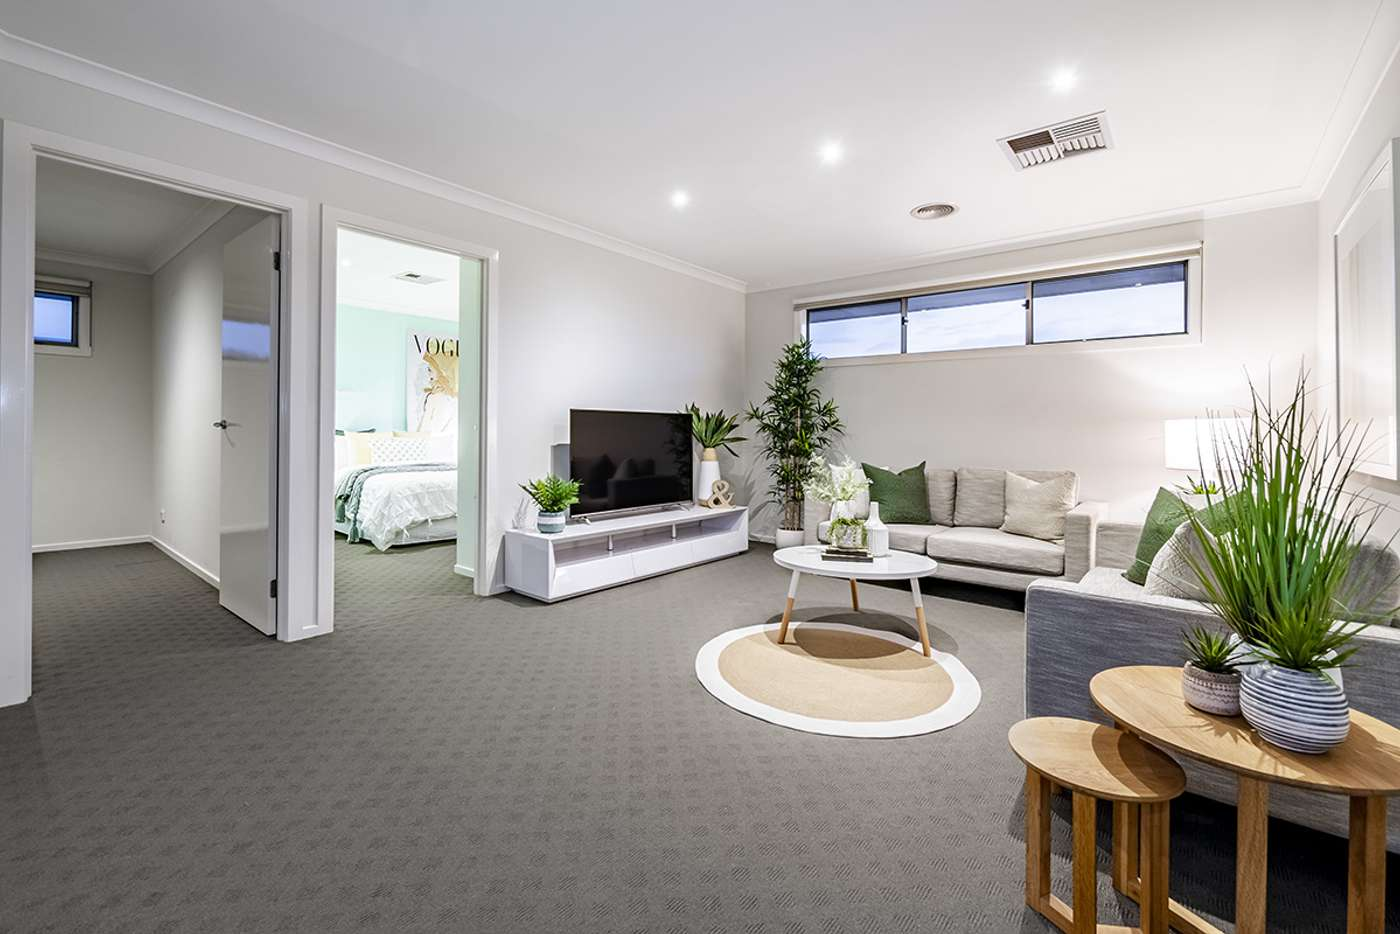 Fifth view of Homely house listing, 117 Marriott Boulevard, Lyndhurst VIC 3975